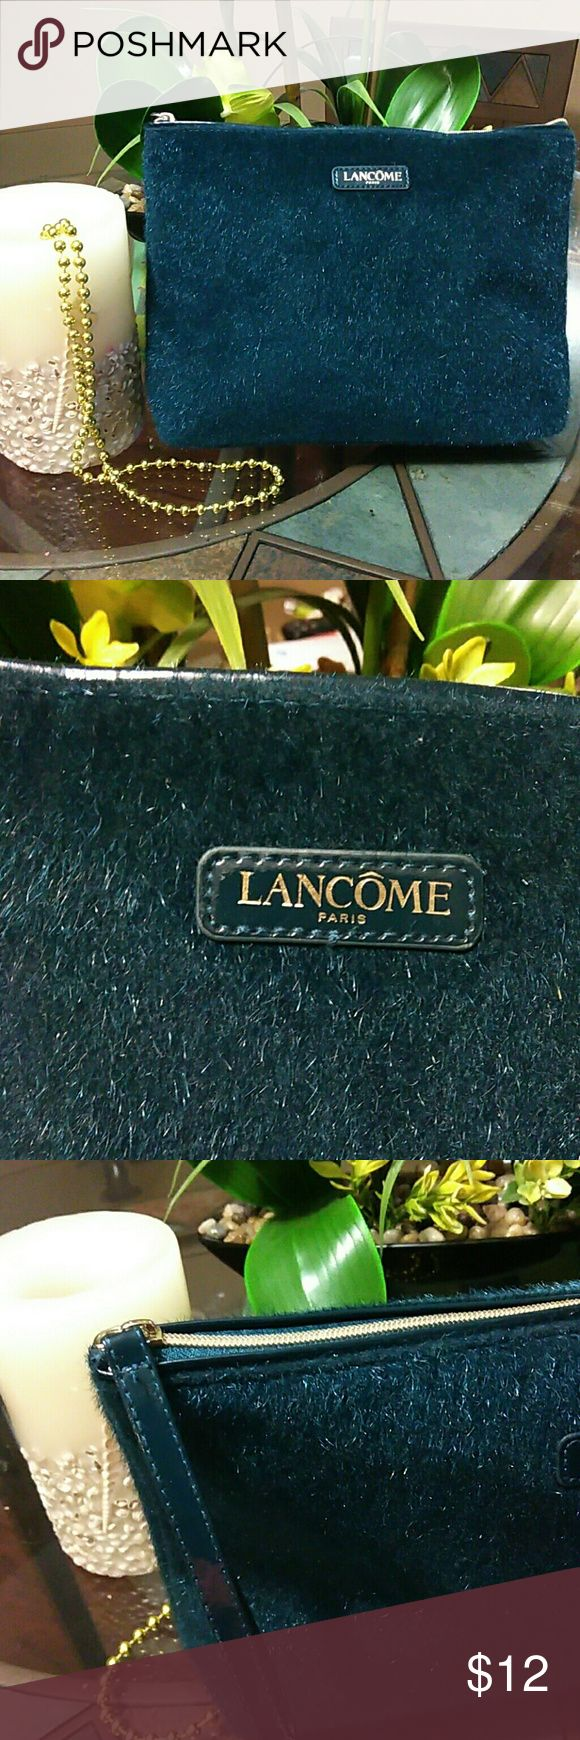 NWOT Lancome Paris Designer Cosmetic Bag This bag is a great piece for travel or everyday essentials. Features Faux fur, gold tone hardware, zip closure, patent leather finish at the bottom and the strap. Measures 11.5w x 8h x 2.5 at the bottom. A must have. Lancome Bags Cosmetic Bags & Cases